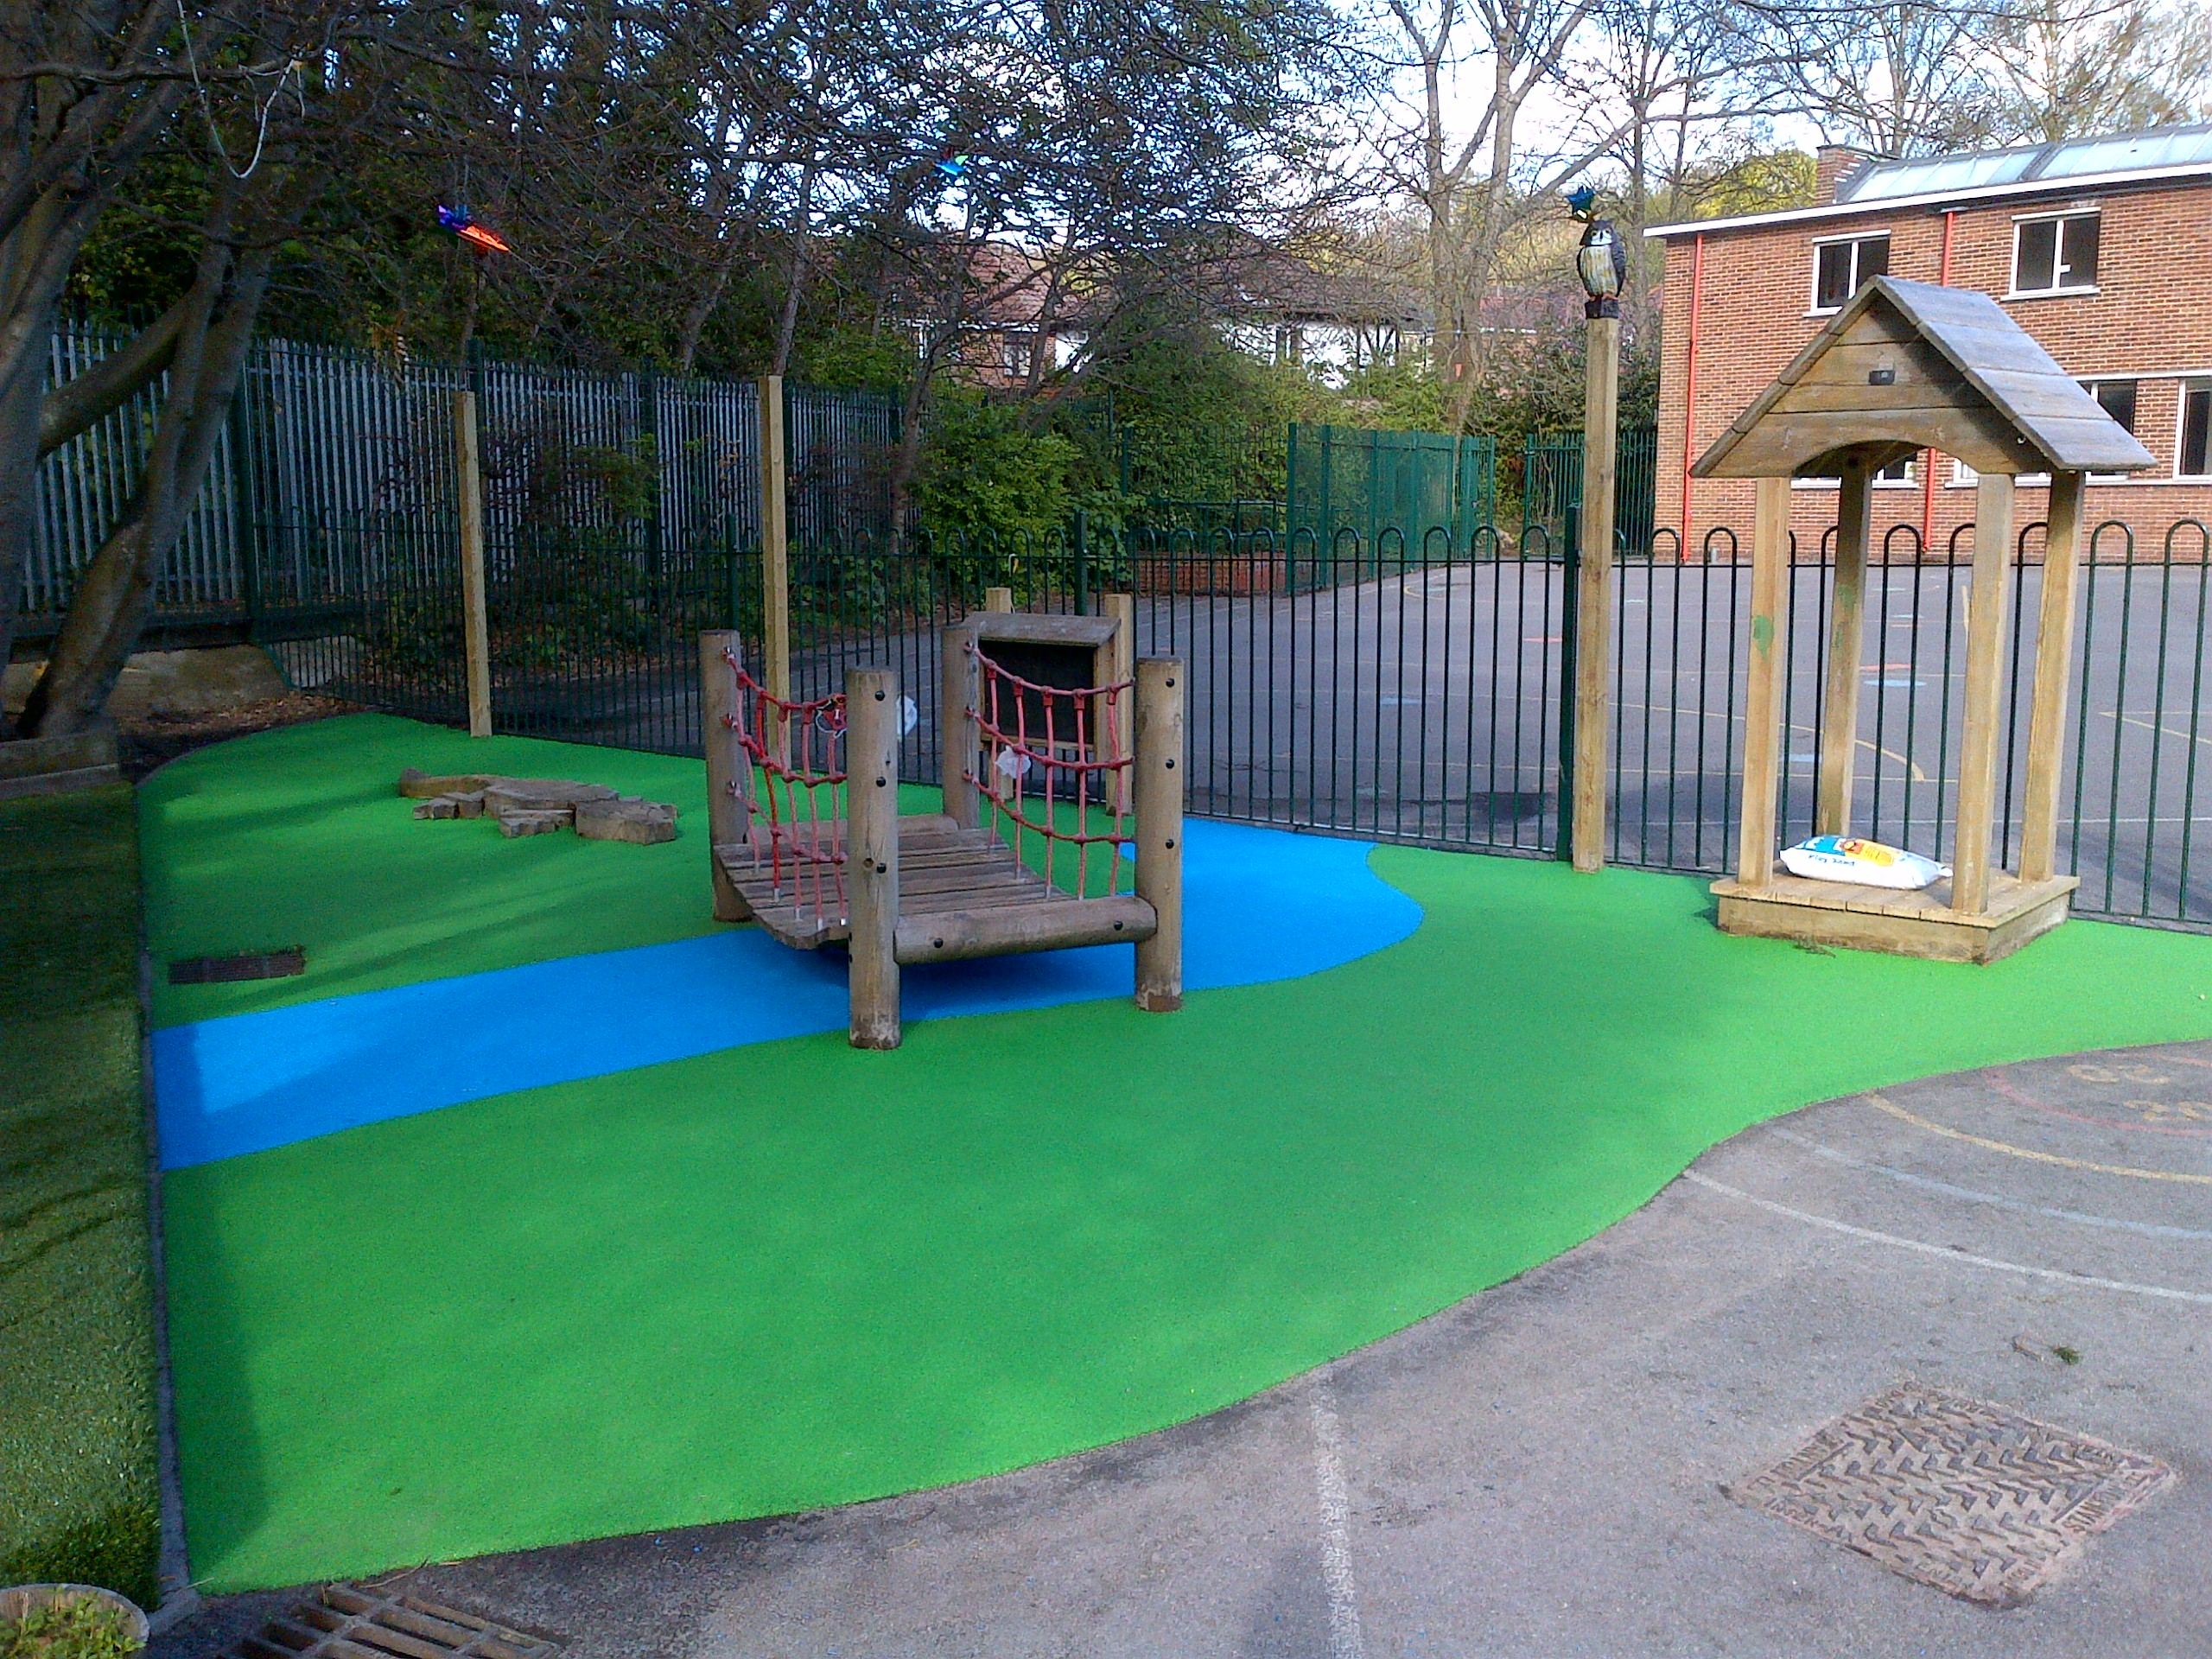 53m² green and blue wetpour in Southampton